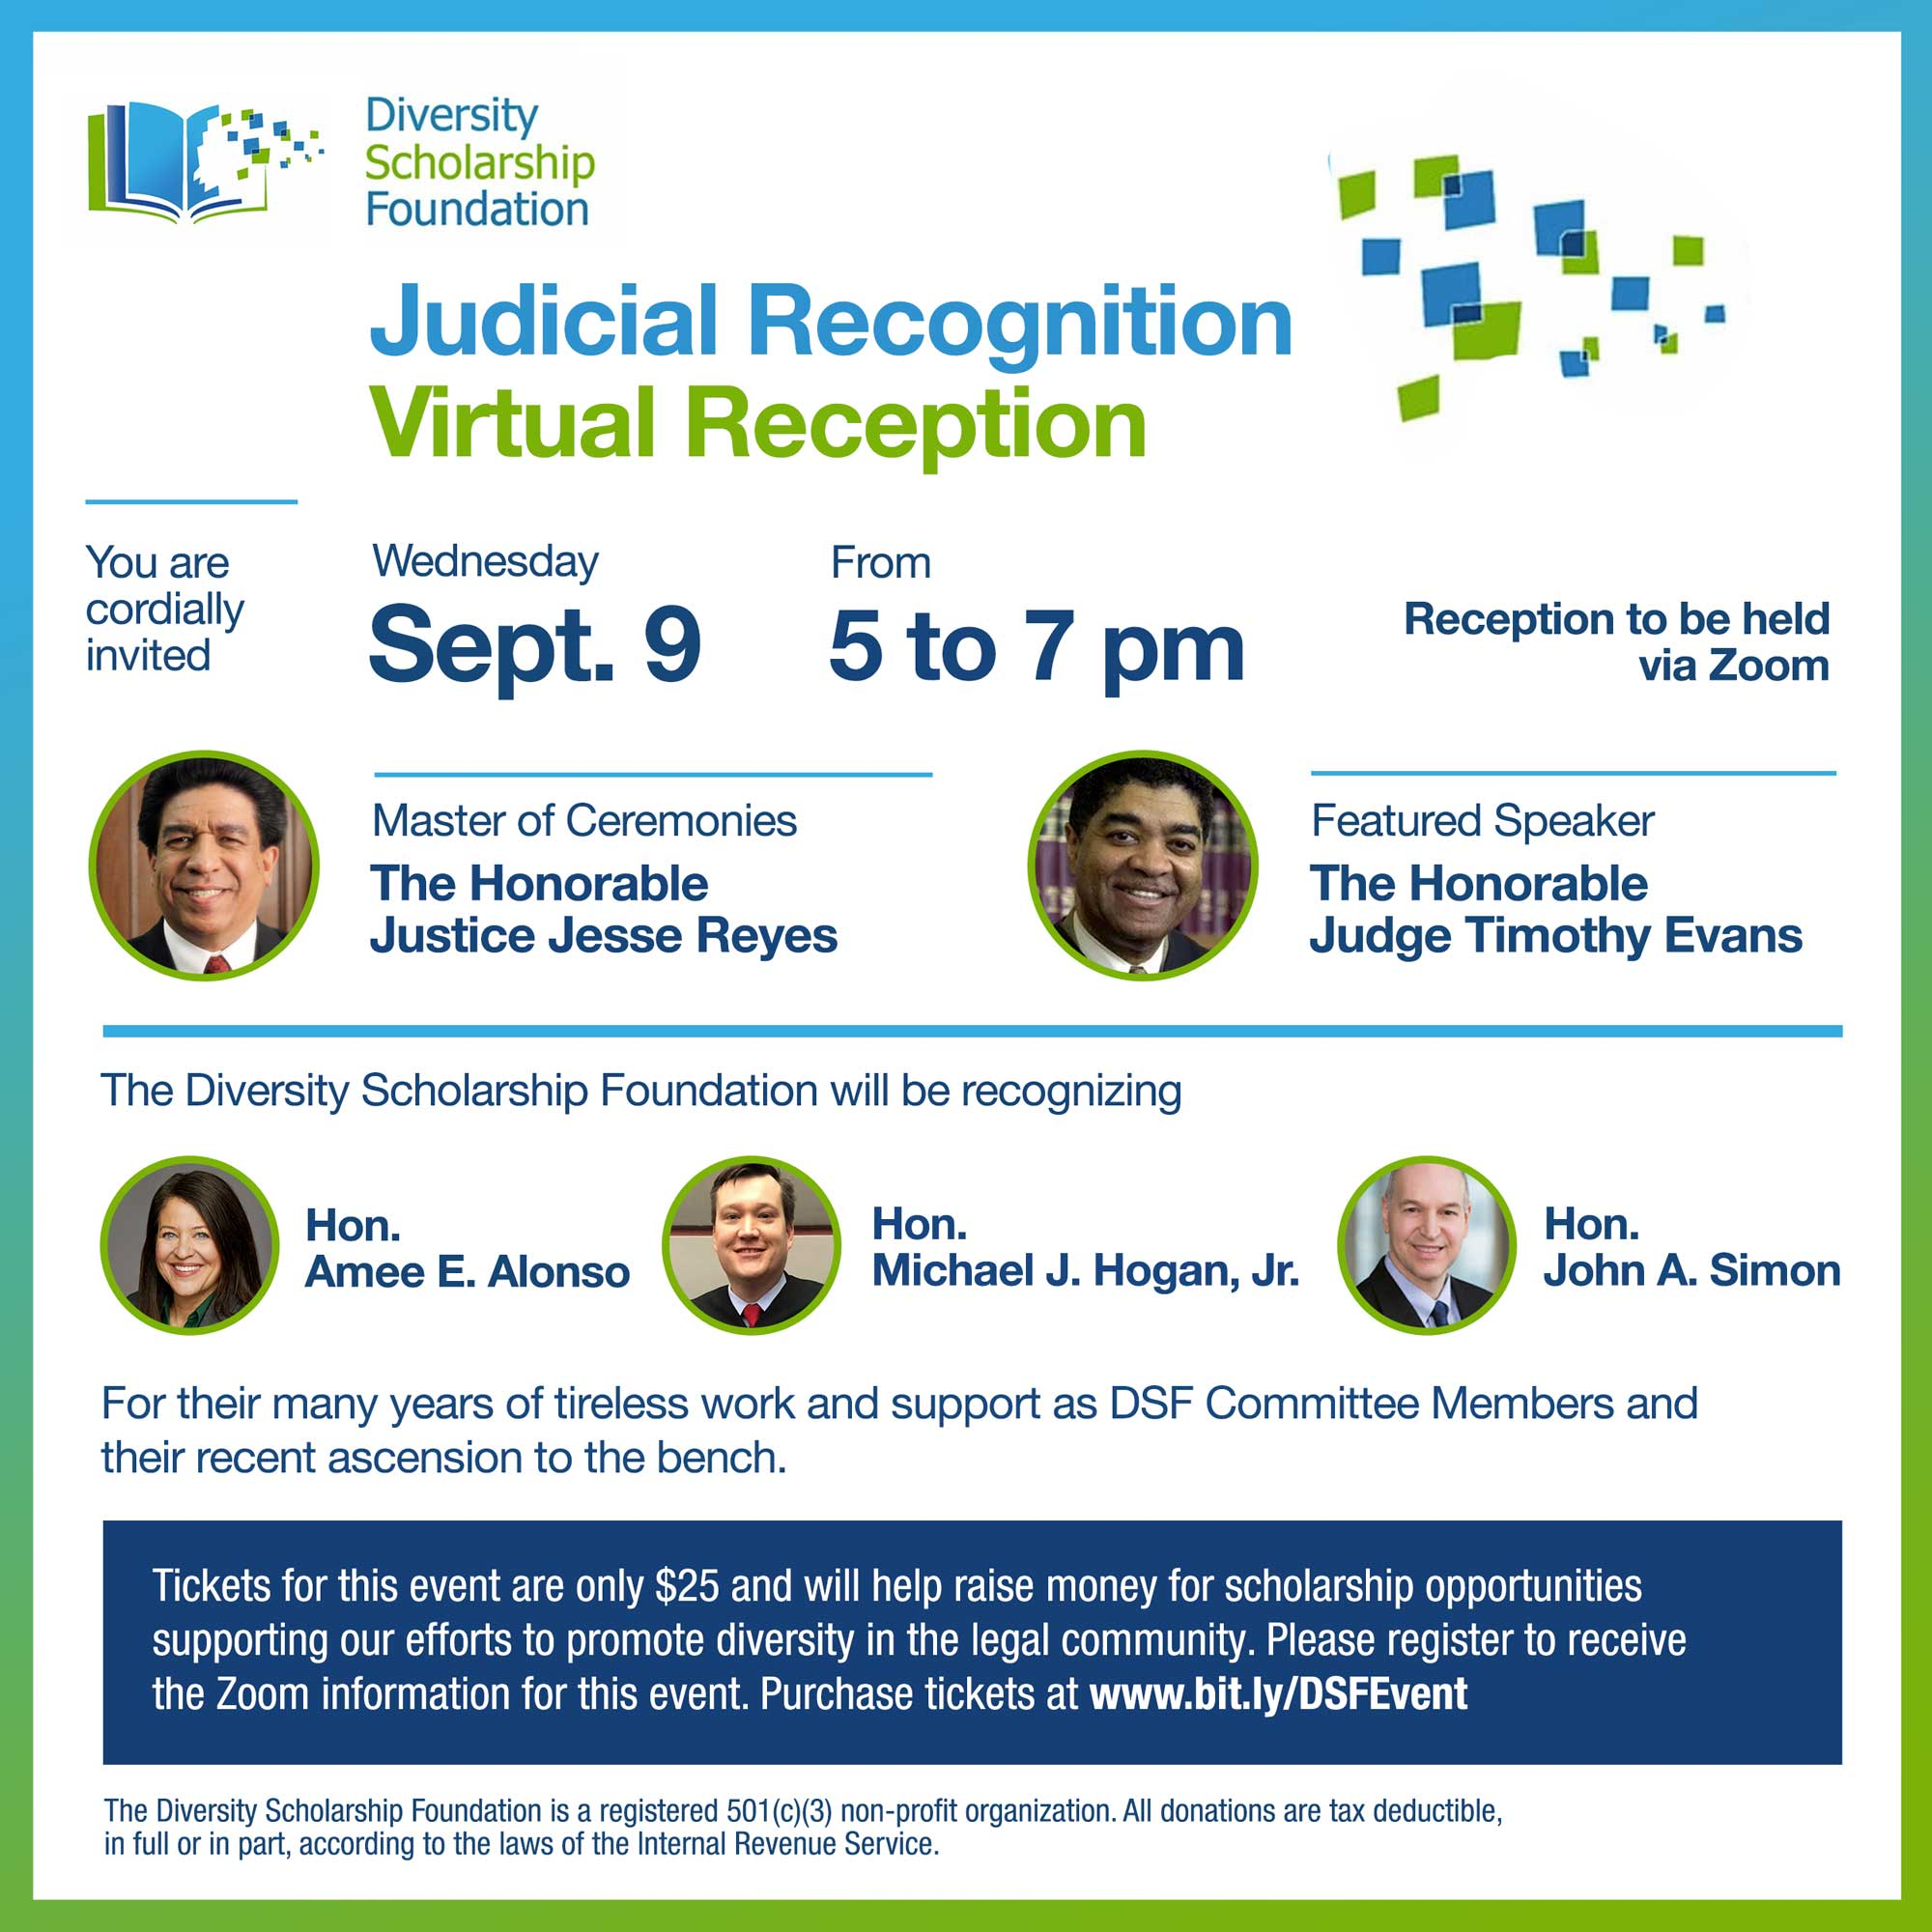 2020 Judicial Recognition Virtual Reception – RESERVE YOUR TICKETS!